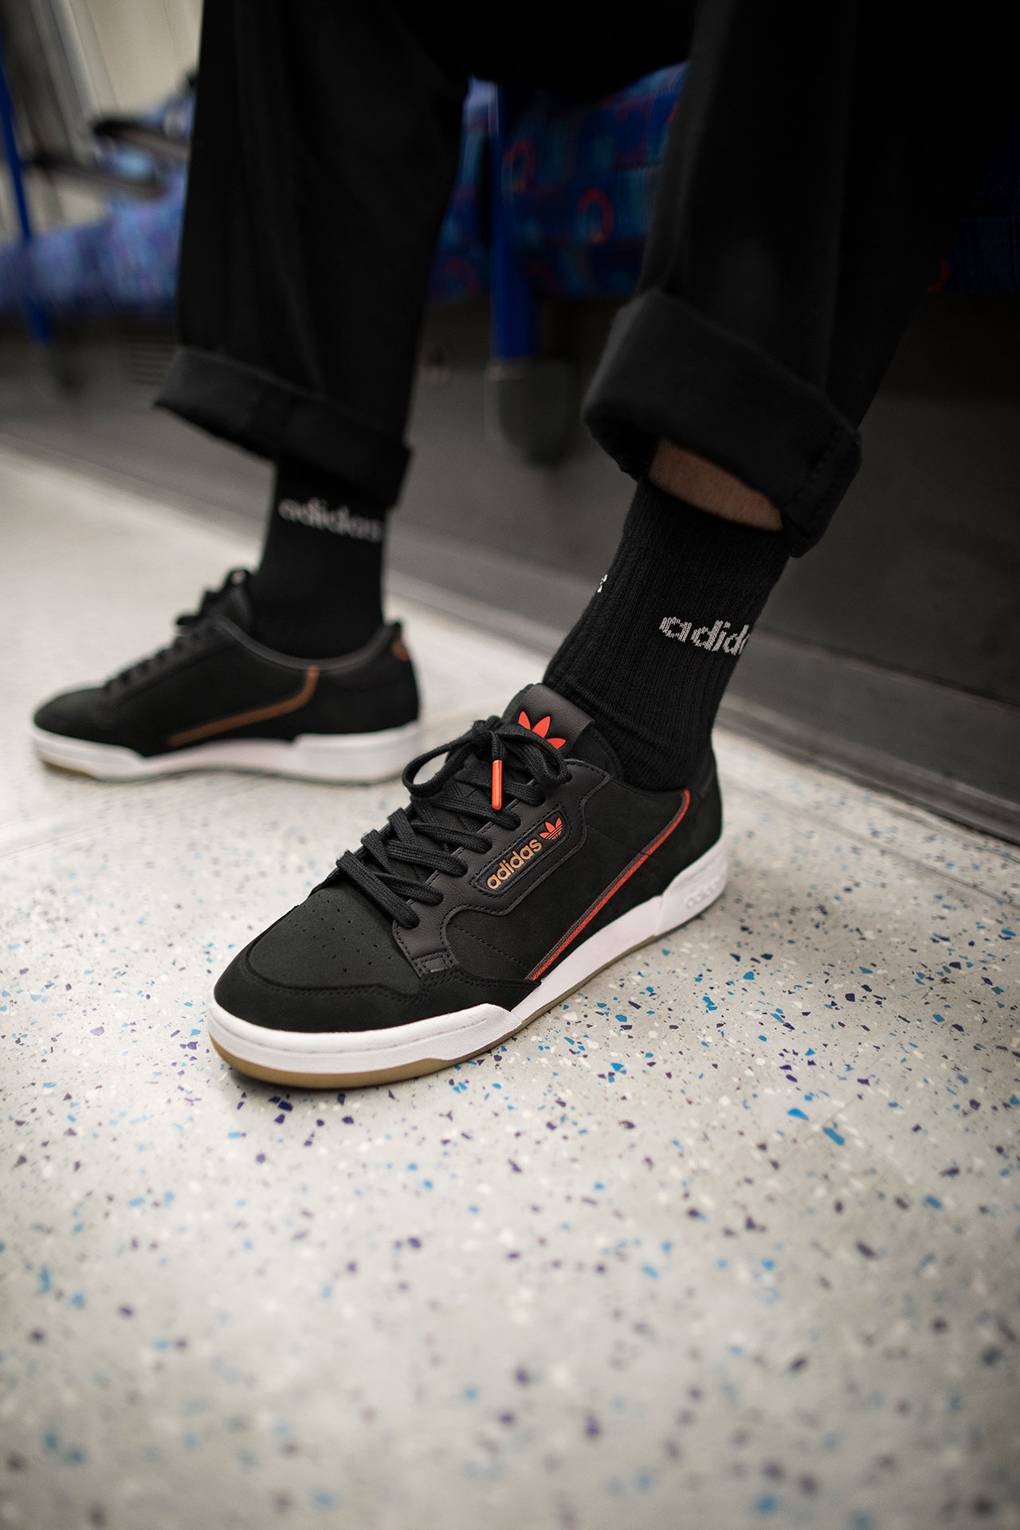 3a2dfb1e3 Adidas x TfL collaboration  first look